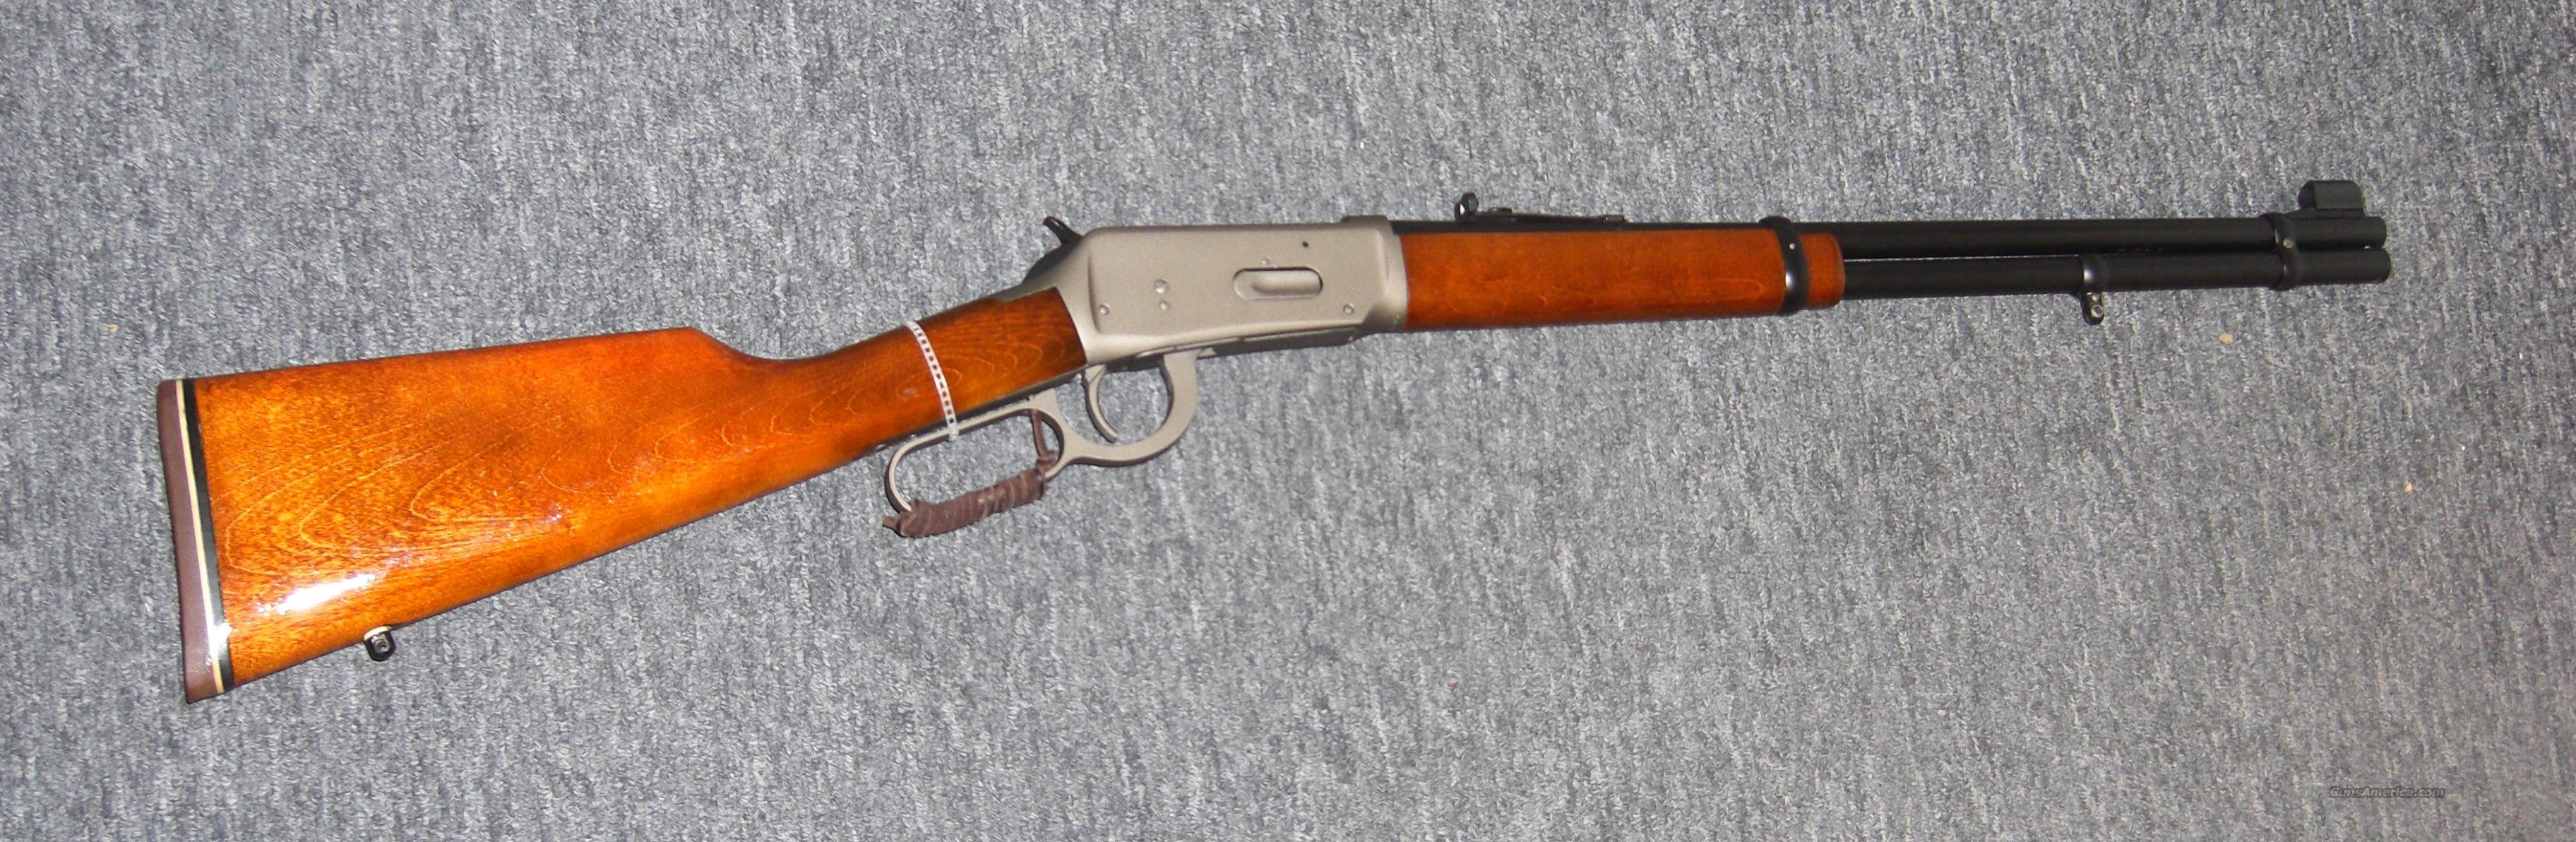 94 w/refinished receiver  Guns > Rifles > Winchester Rifles - Modern Lever > Model 94 > Post-64